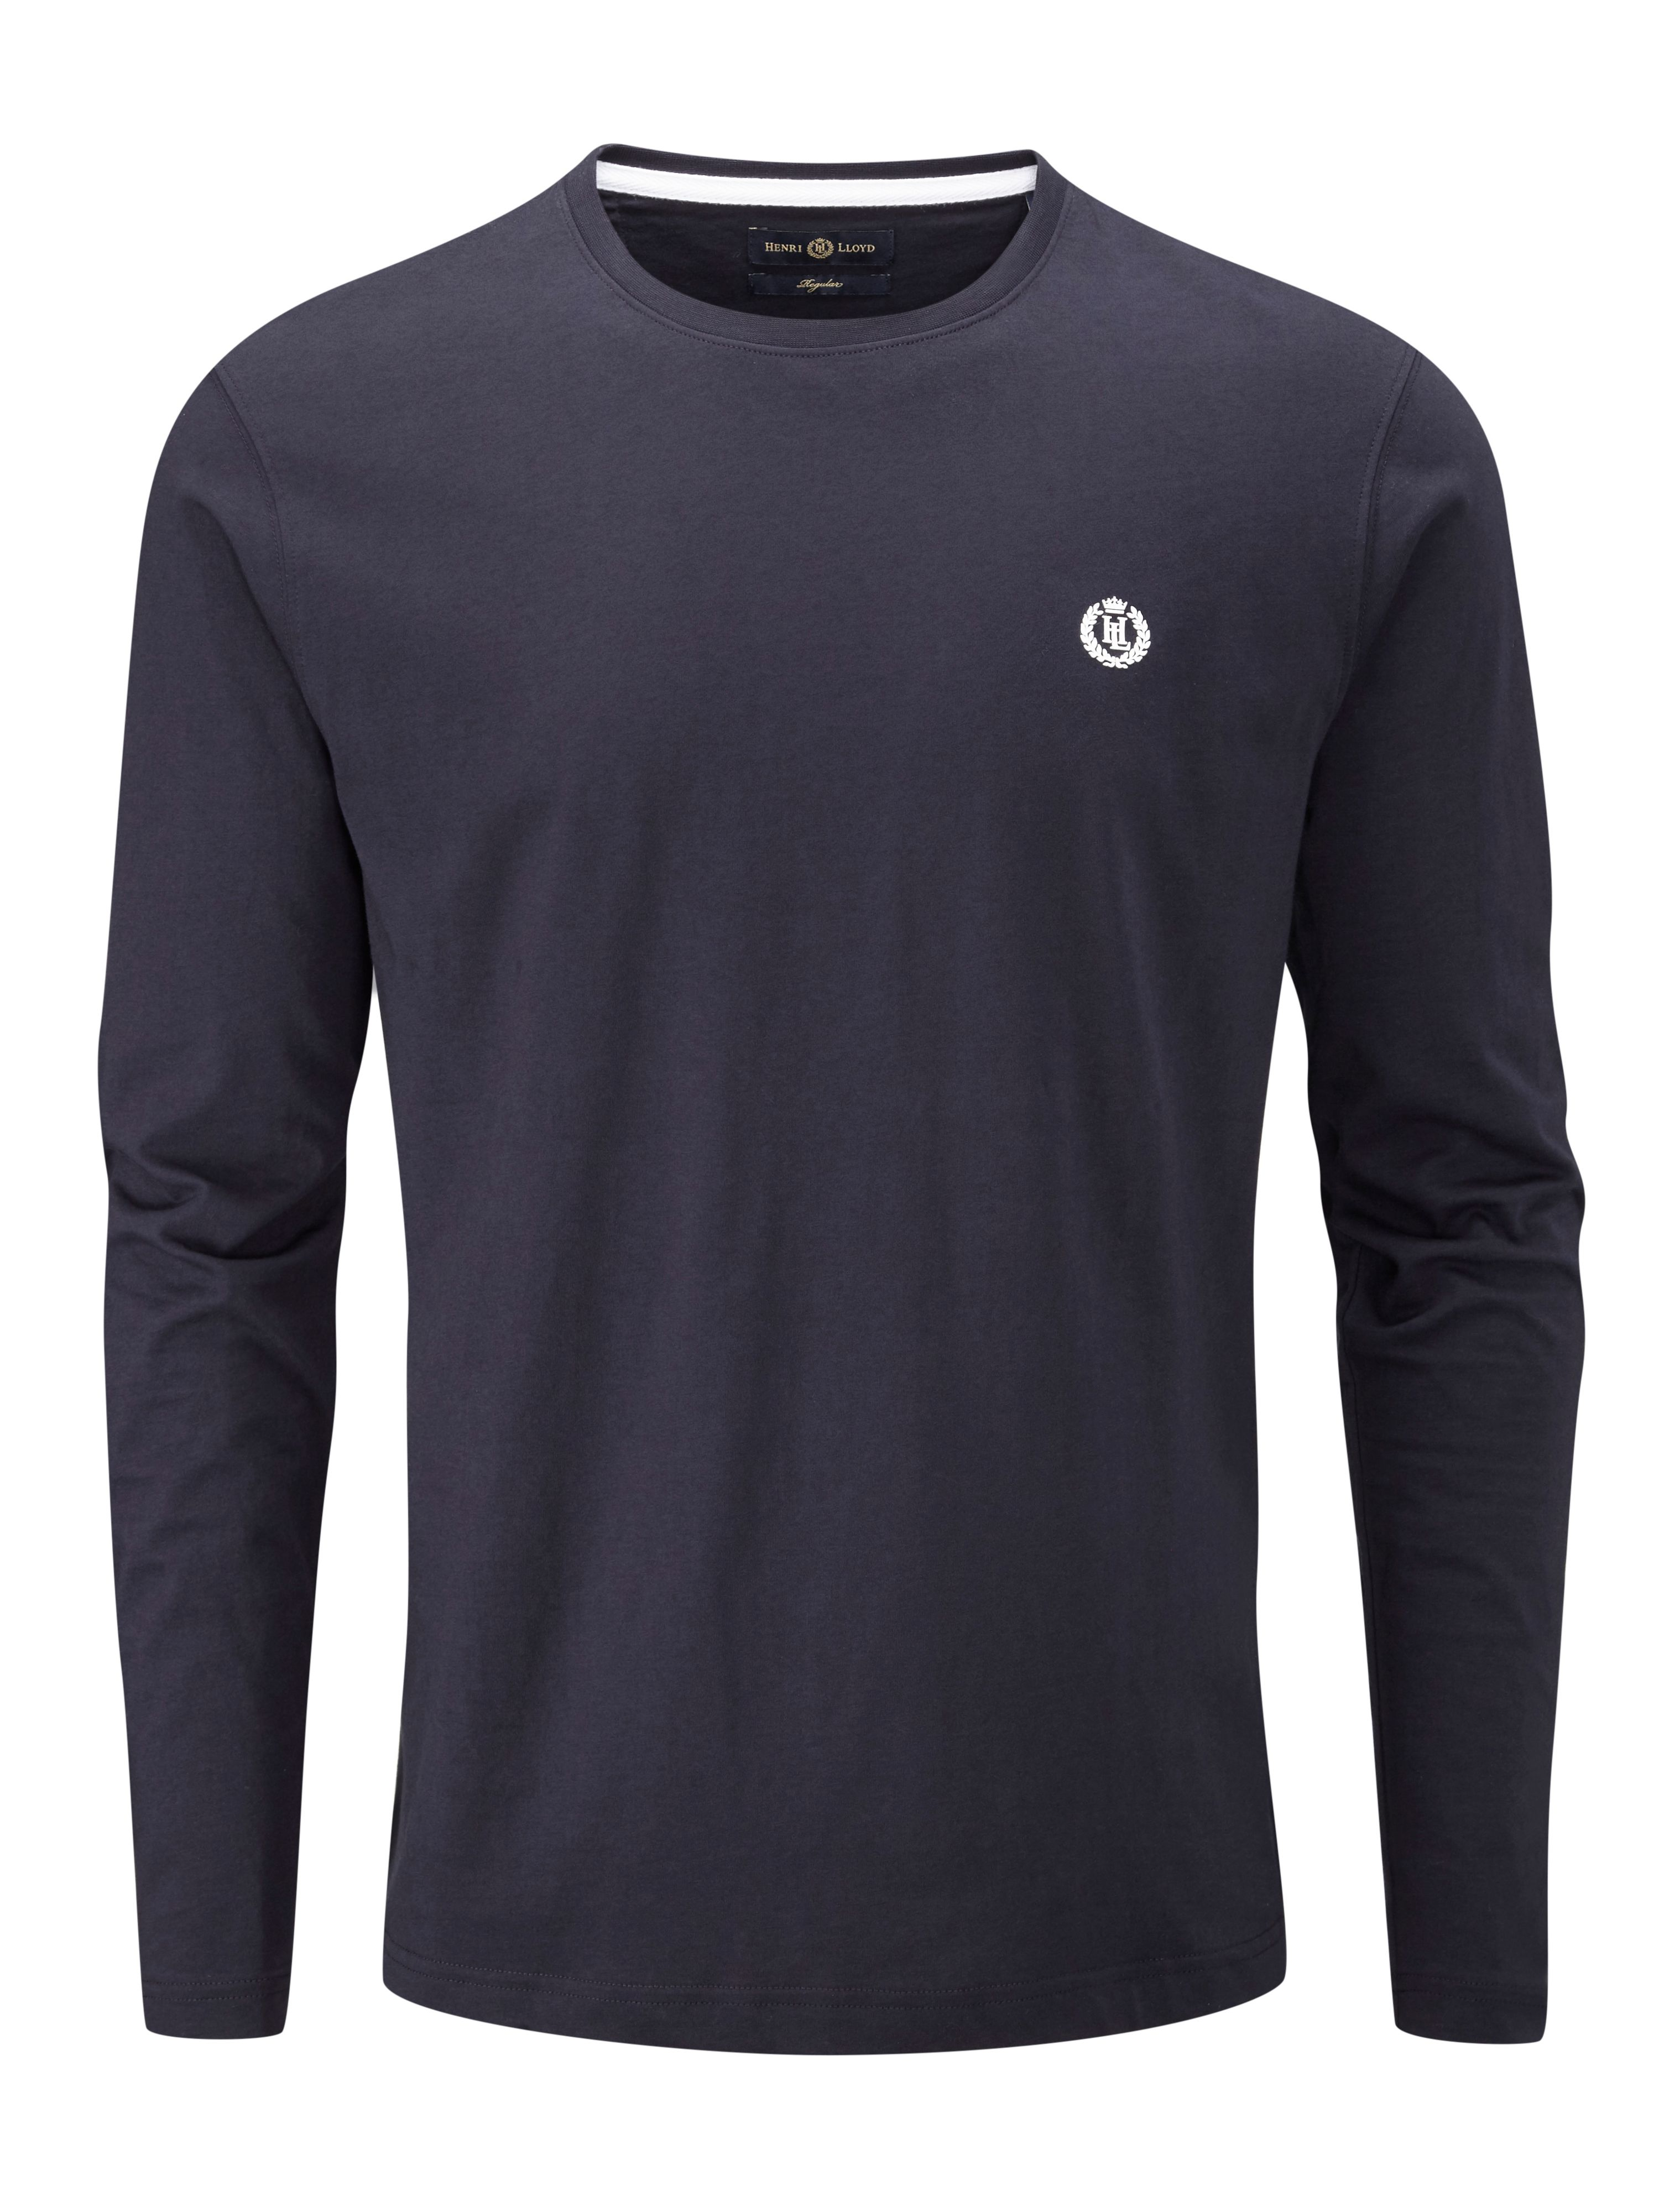 Men's Henri Lloyd Radar Regular Long Sleeve T-Shirt, Blue